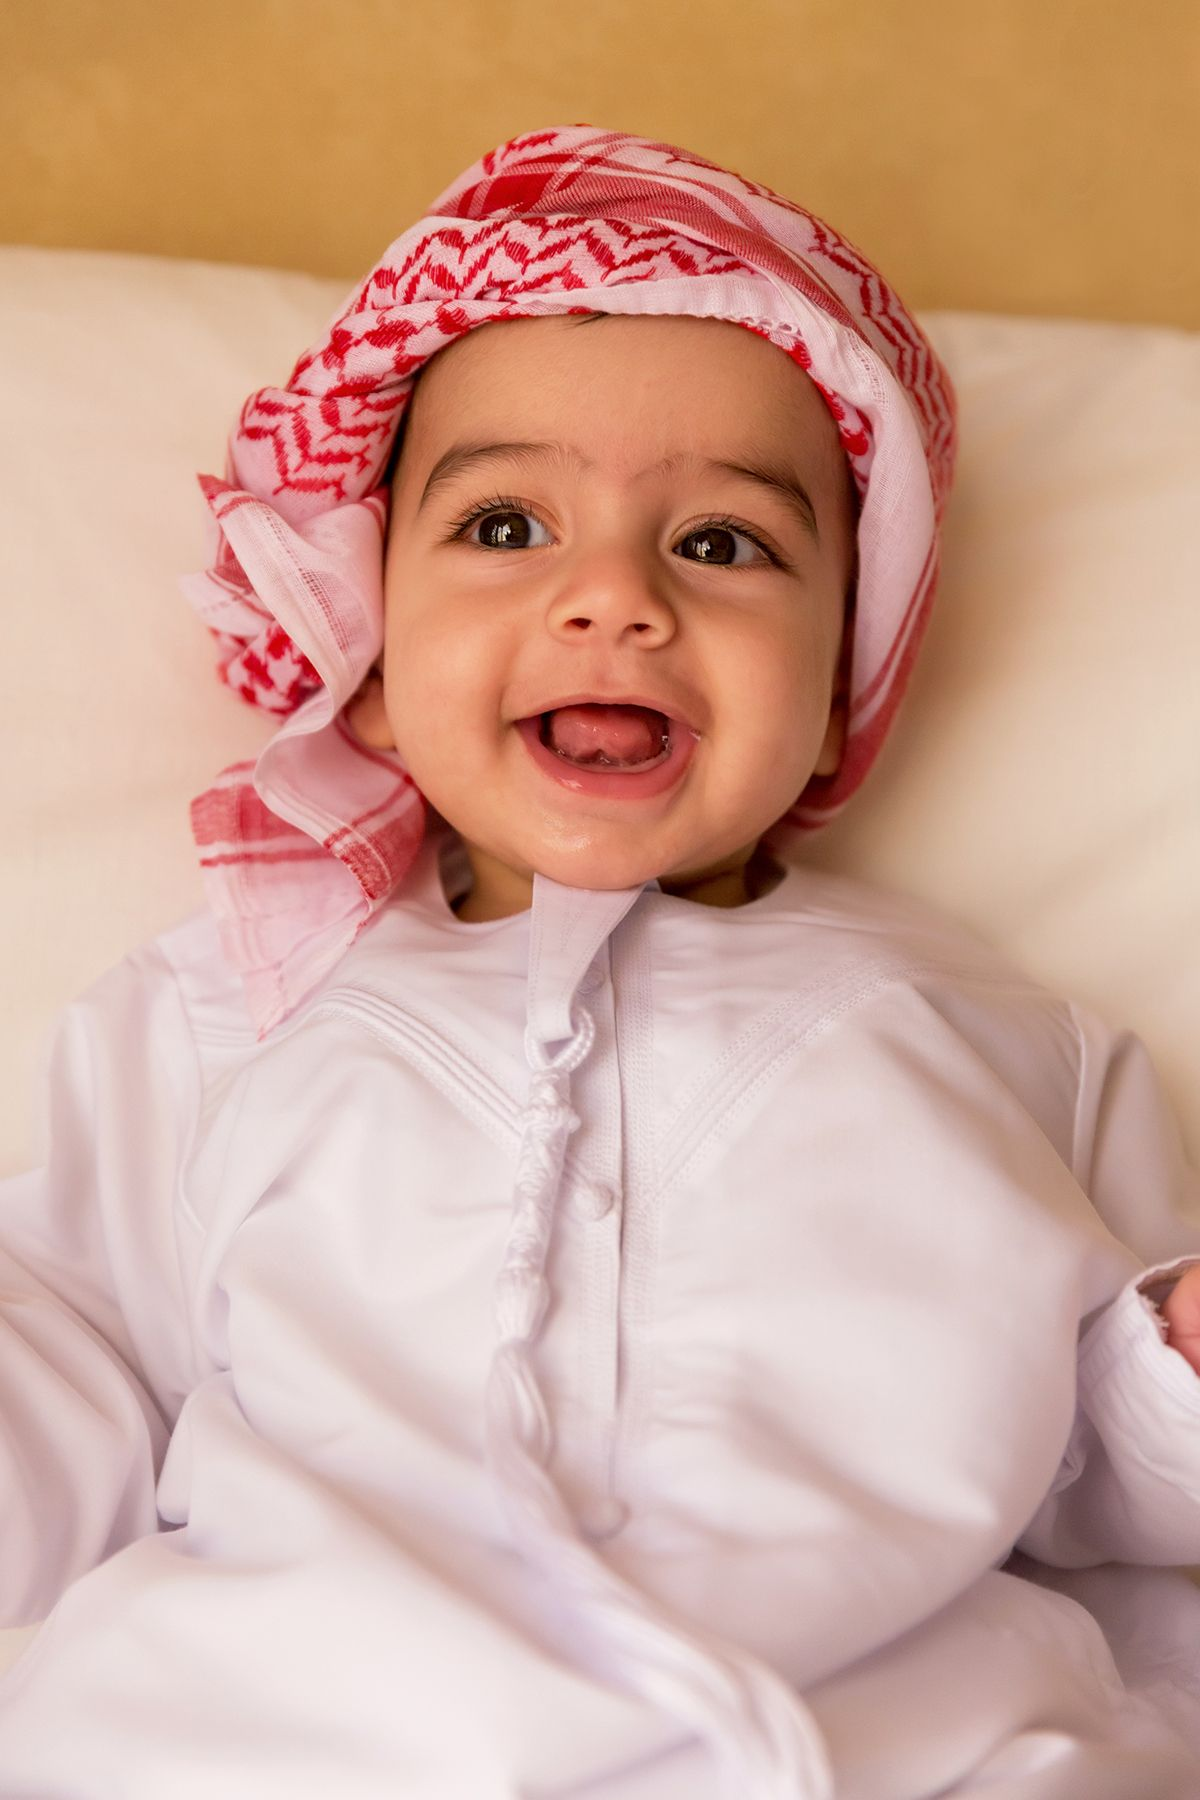 Arabic twin boy being photographed at home in Dubai  cuteBaby  arabicBoy   sweetBaby  Dubai f7351be79db7